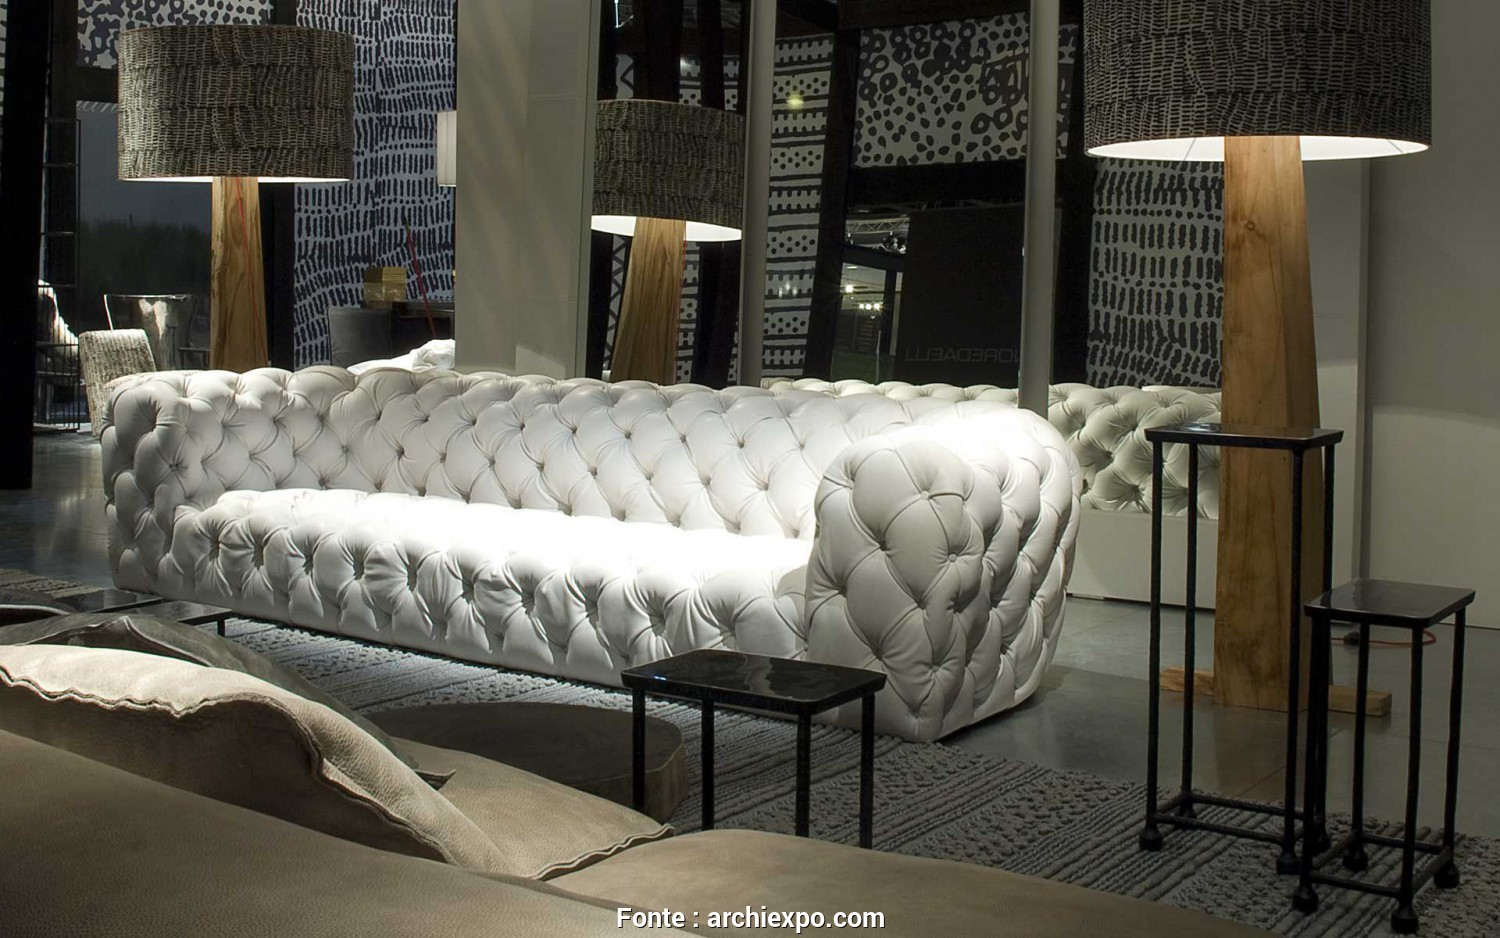 Divano Baxter Chester Moon, Classy Chesterfield Sofa / Leather / 3-Seater / Gray. CHESTER MOON By Paole Navone Baxter